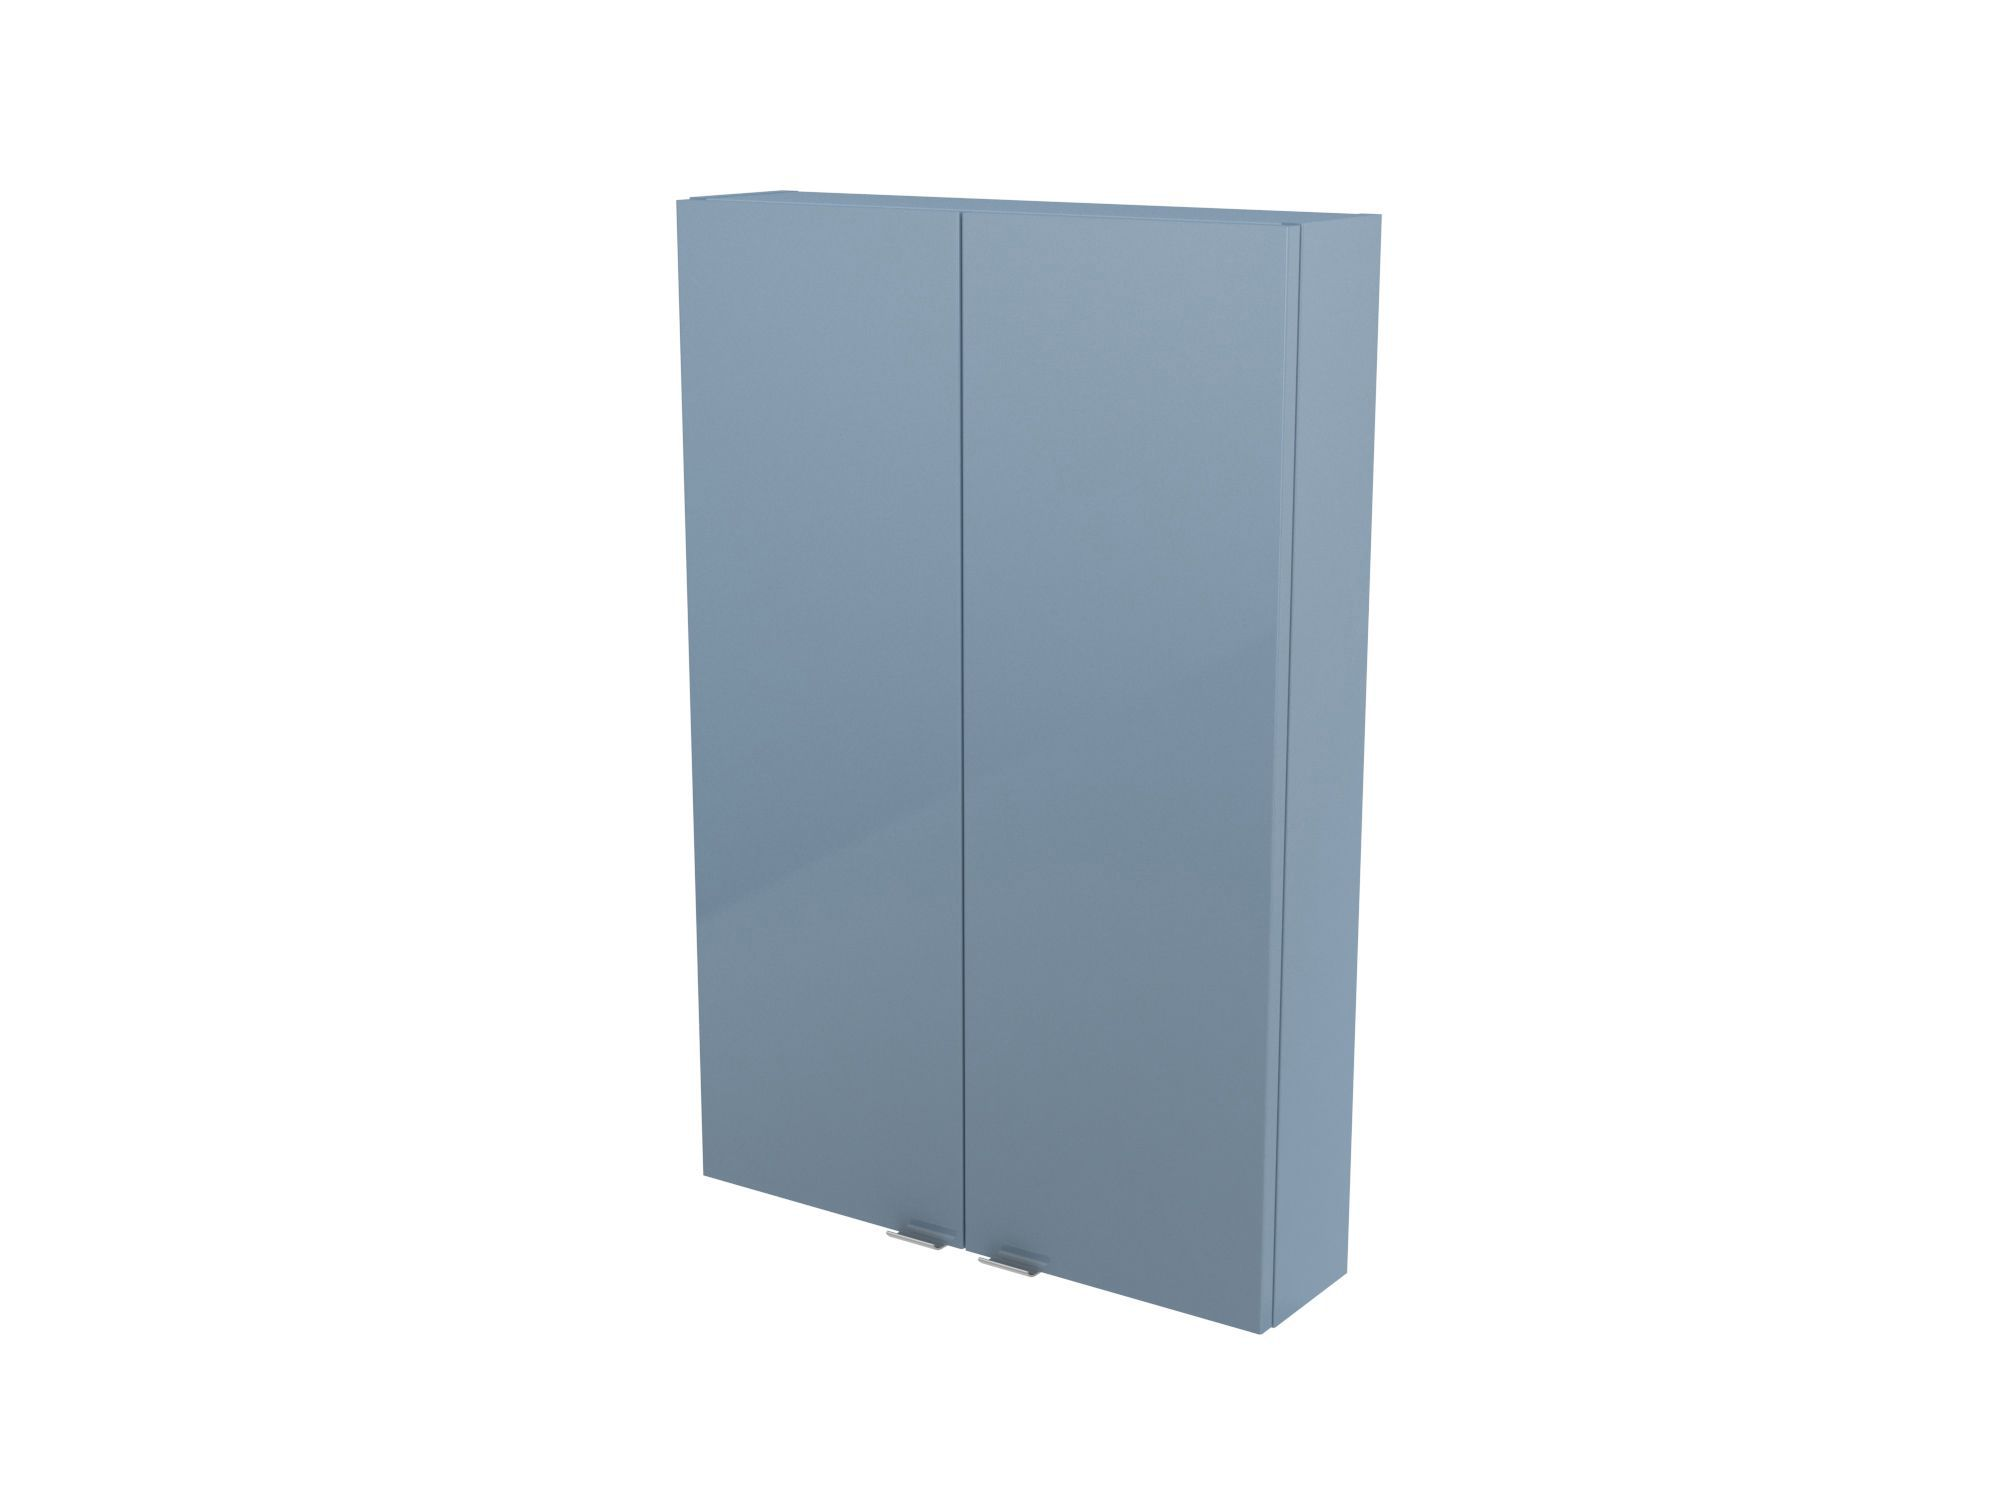 Cooke Amp Lewis Imandra Gloss Blue Wall Cabinet W 600mm